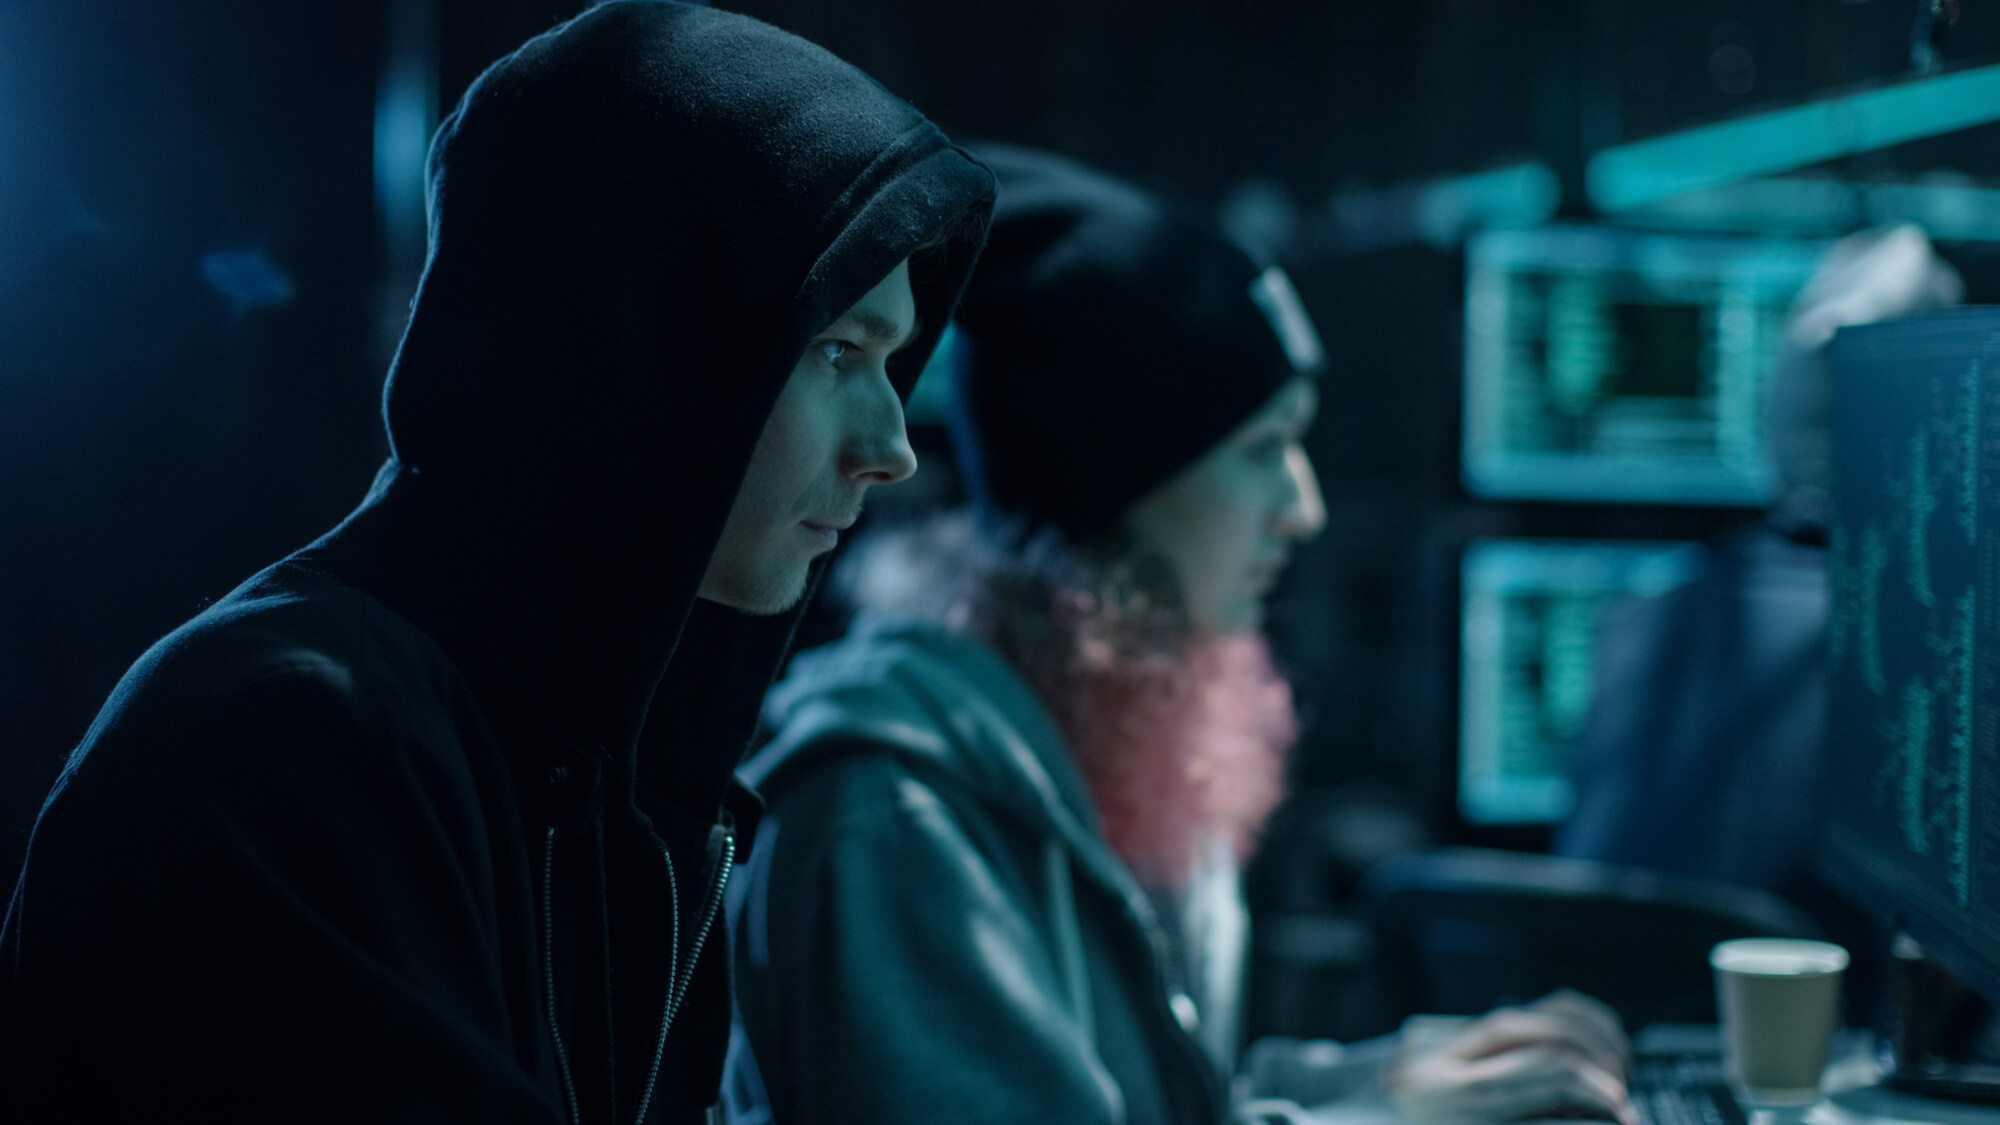 Artificial intelligence and machine learning help hackers steal identities